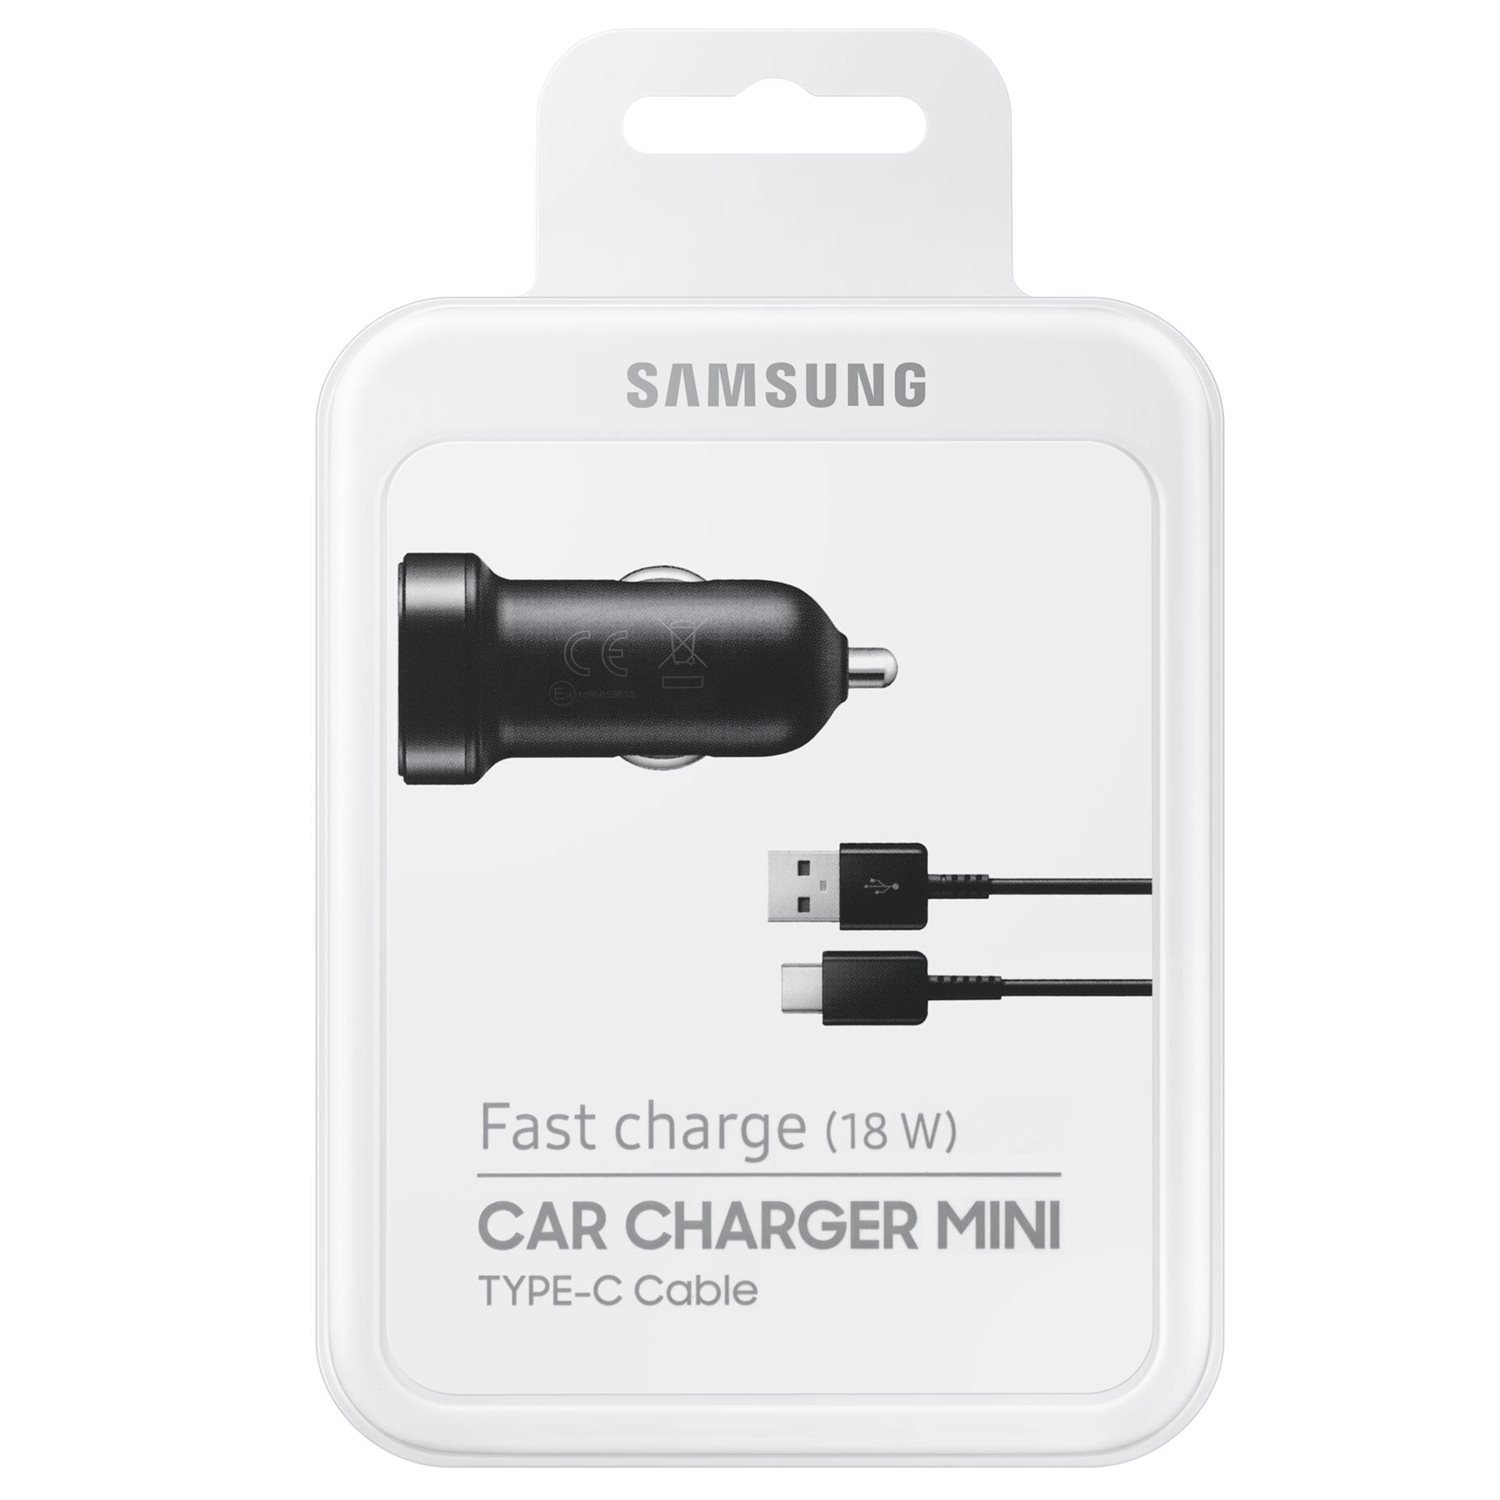 Samsung Fast Charge USB-C Certified Refurbished Mini Car Charger USB Type C